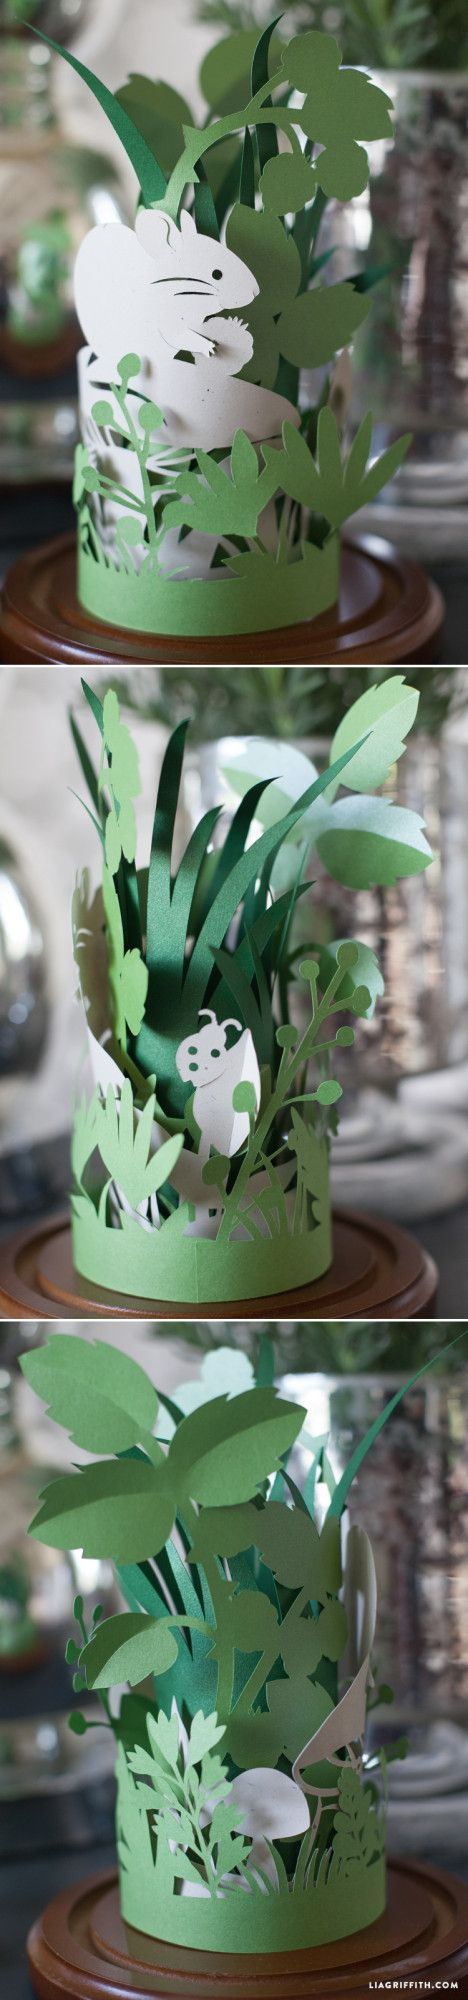 paper art. I'm pinning this as inspiration. I think I can get Panda to make plain grass cuts in two sizes and colors and we can tape them into a  cylinder like this and then apply felt lady bugs and butterflies...